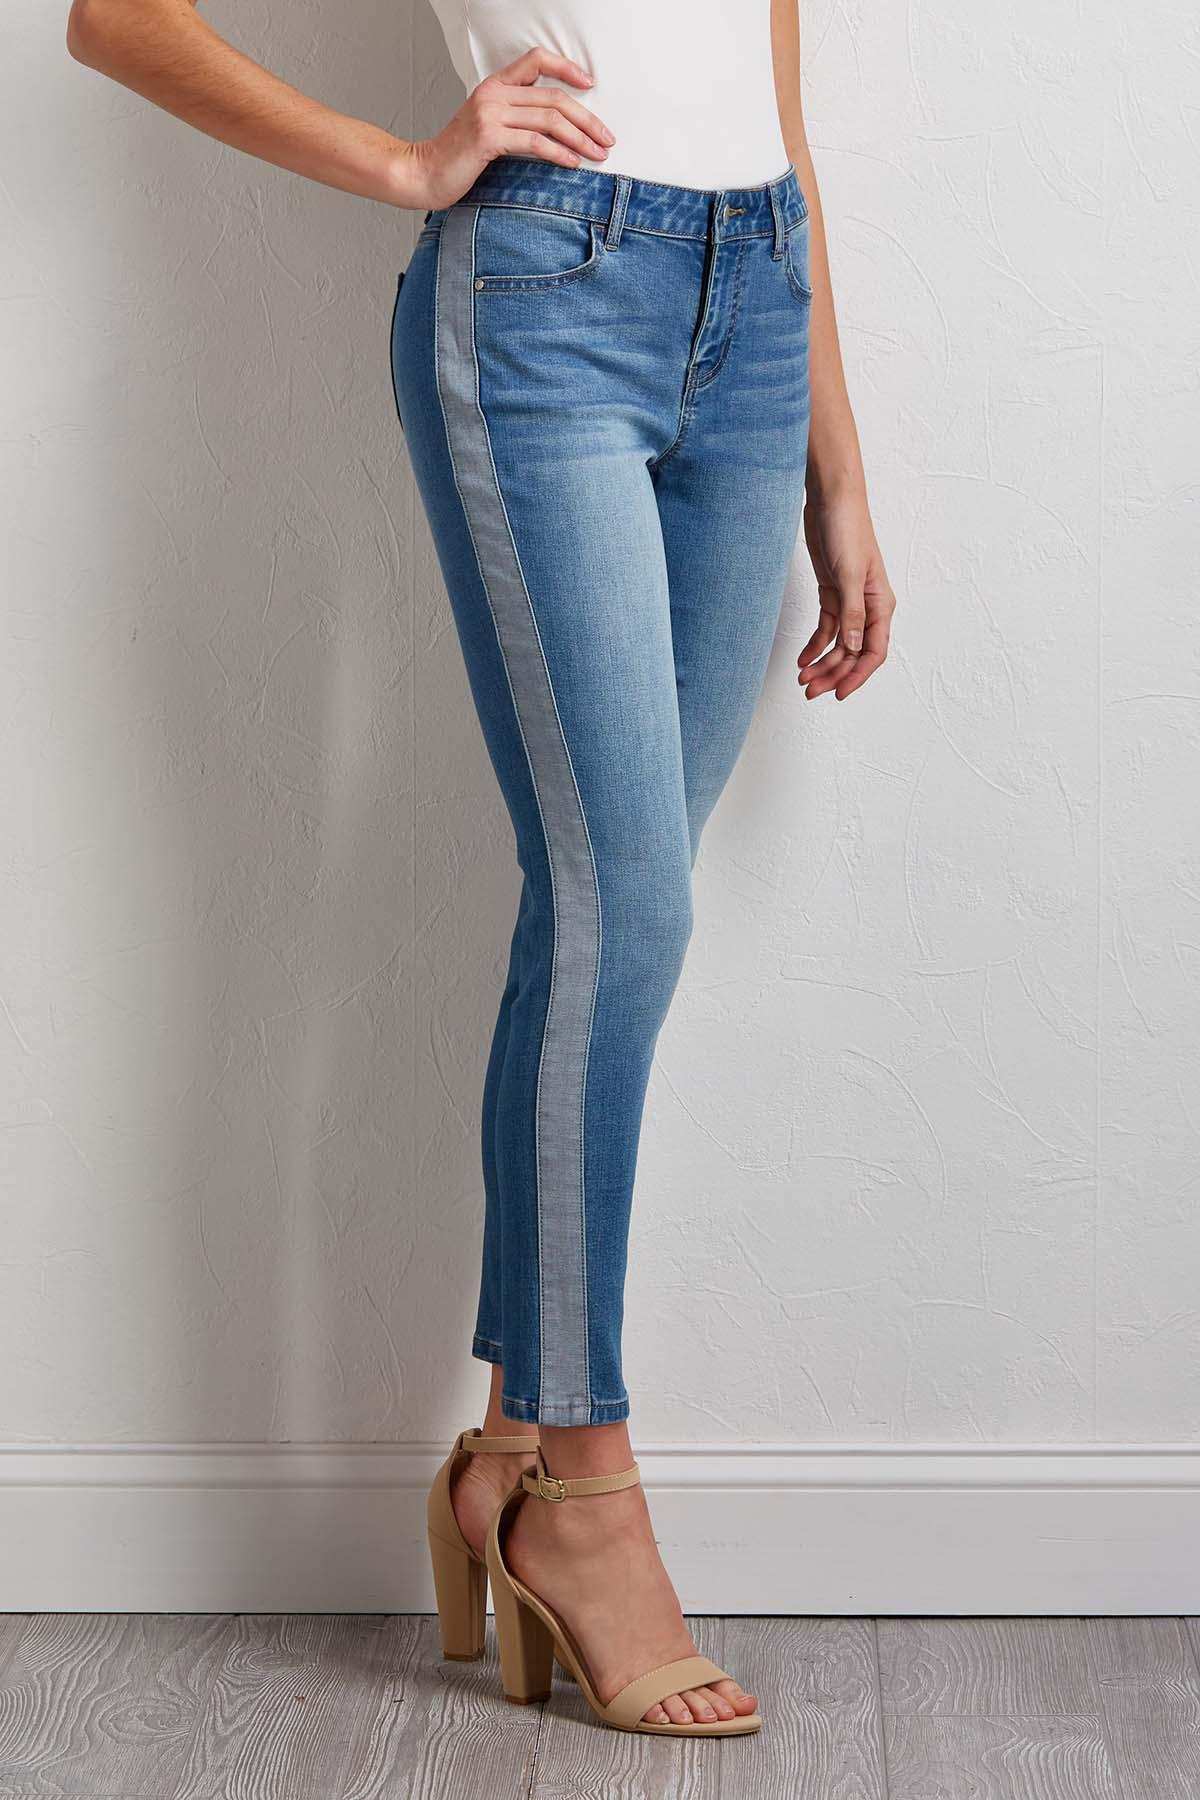 Two- Toned Skinny Jeans